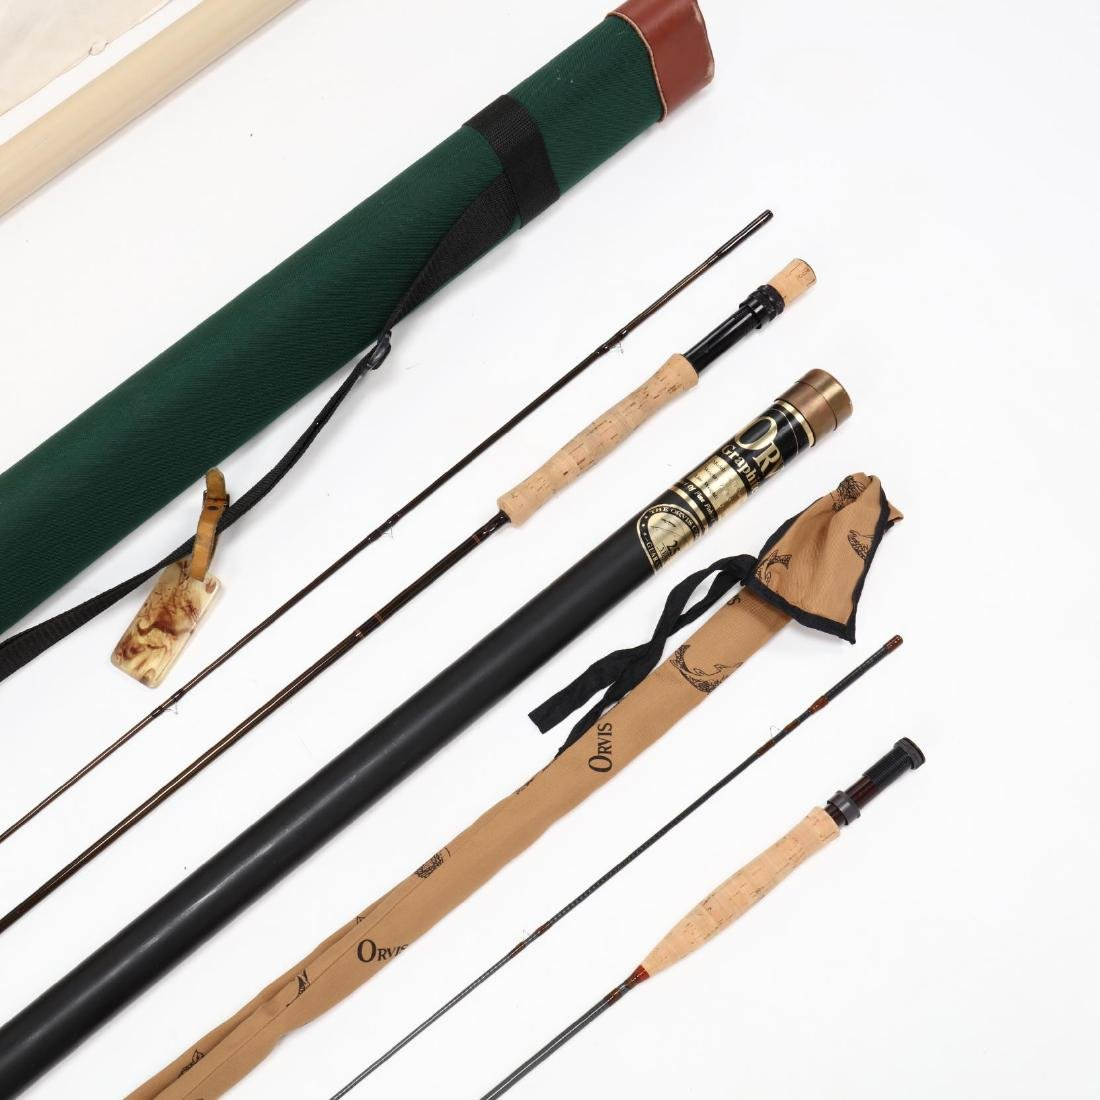 Orivs Graphite Fly Rod and Sage Graphite Fly Rod - 3